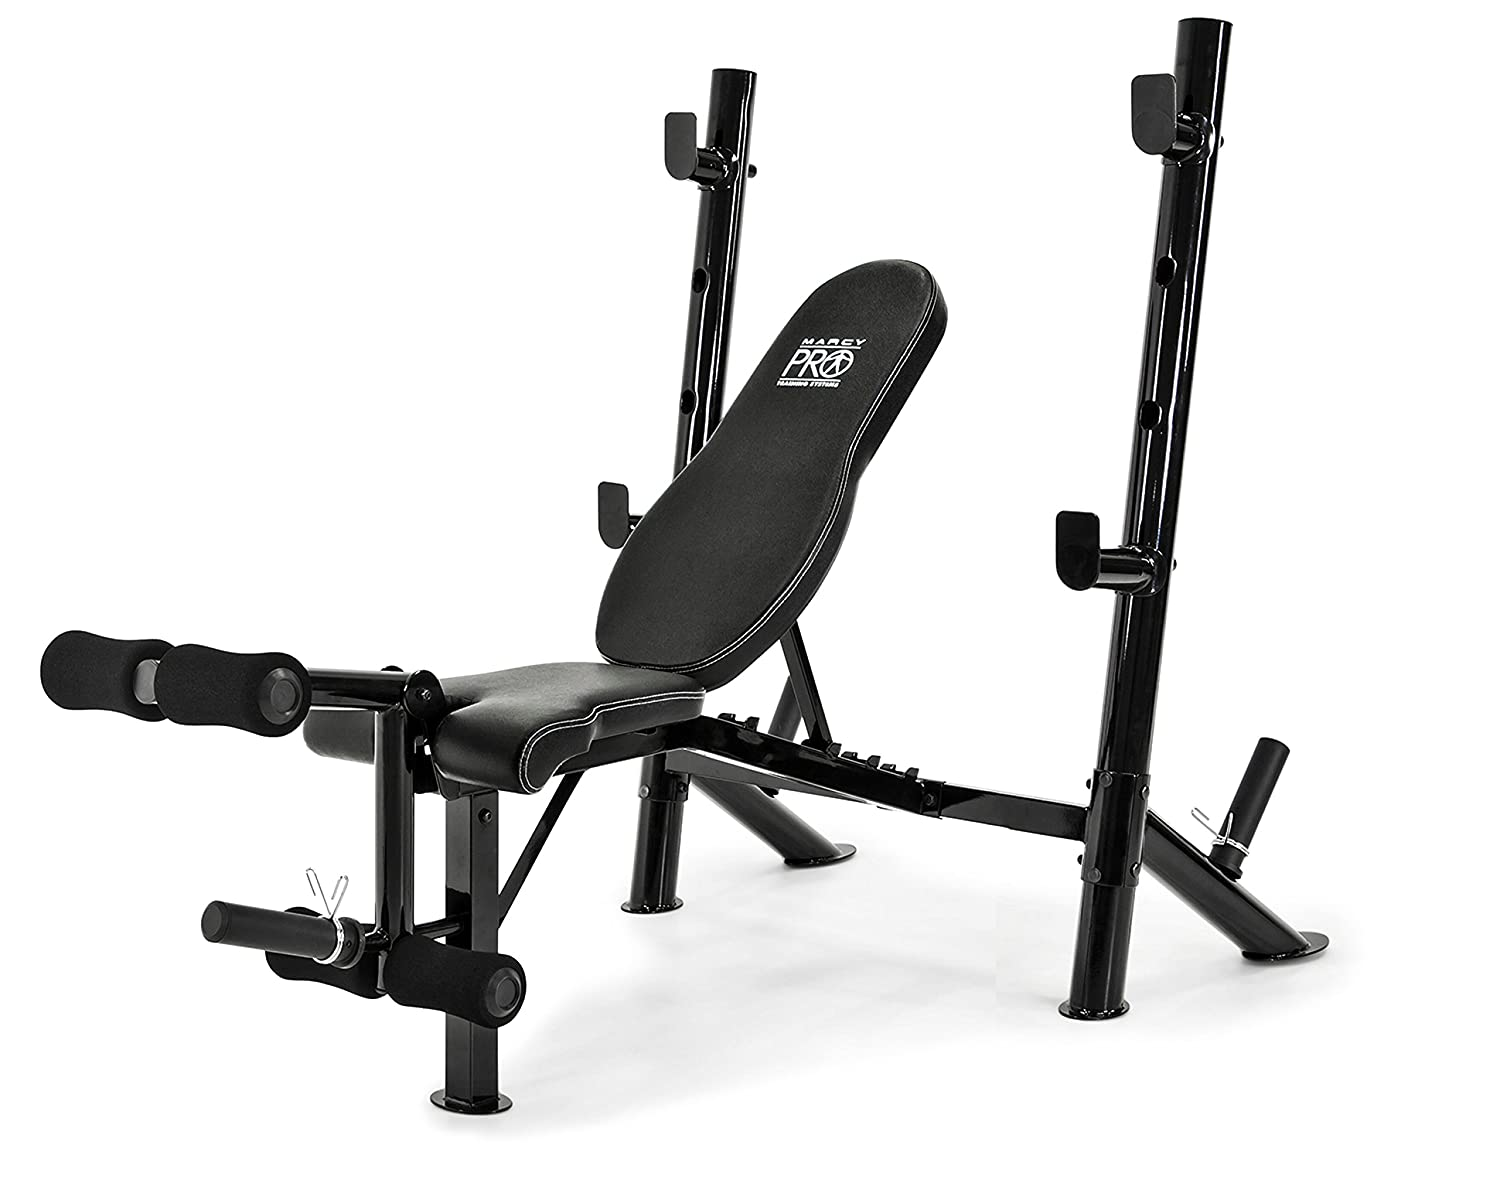 Marcy Multi-Position Mid-Size Exercise Weight Bench for Home Gym Equipment PM-767